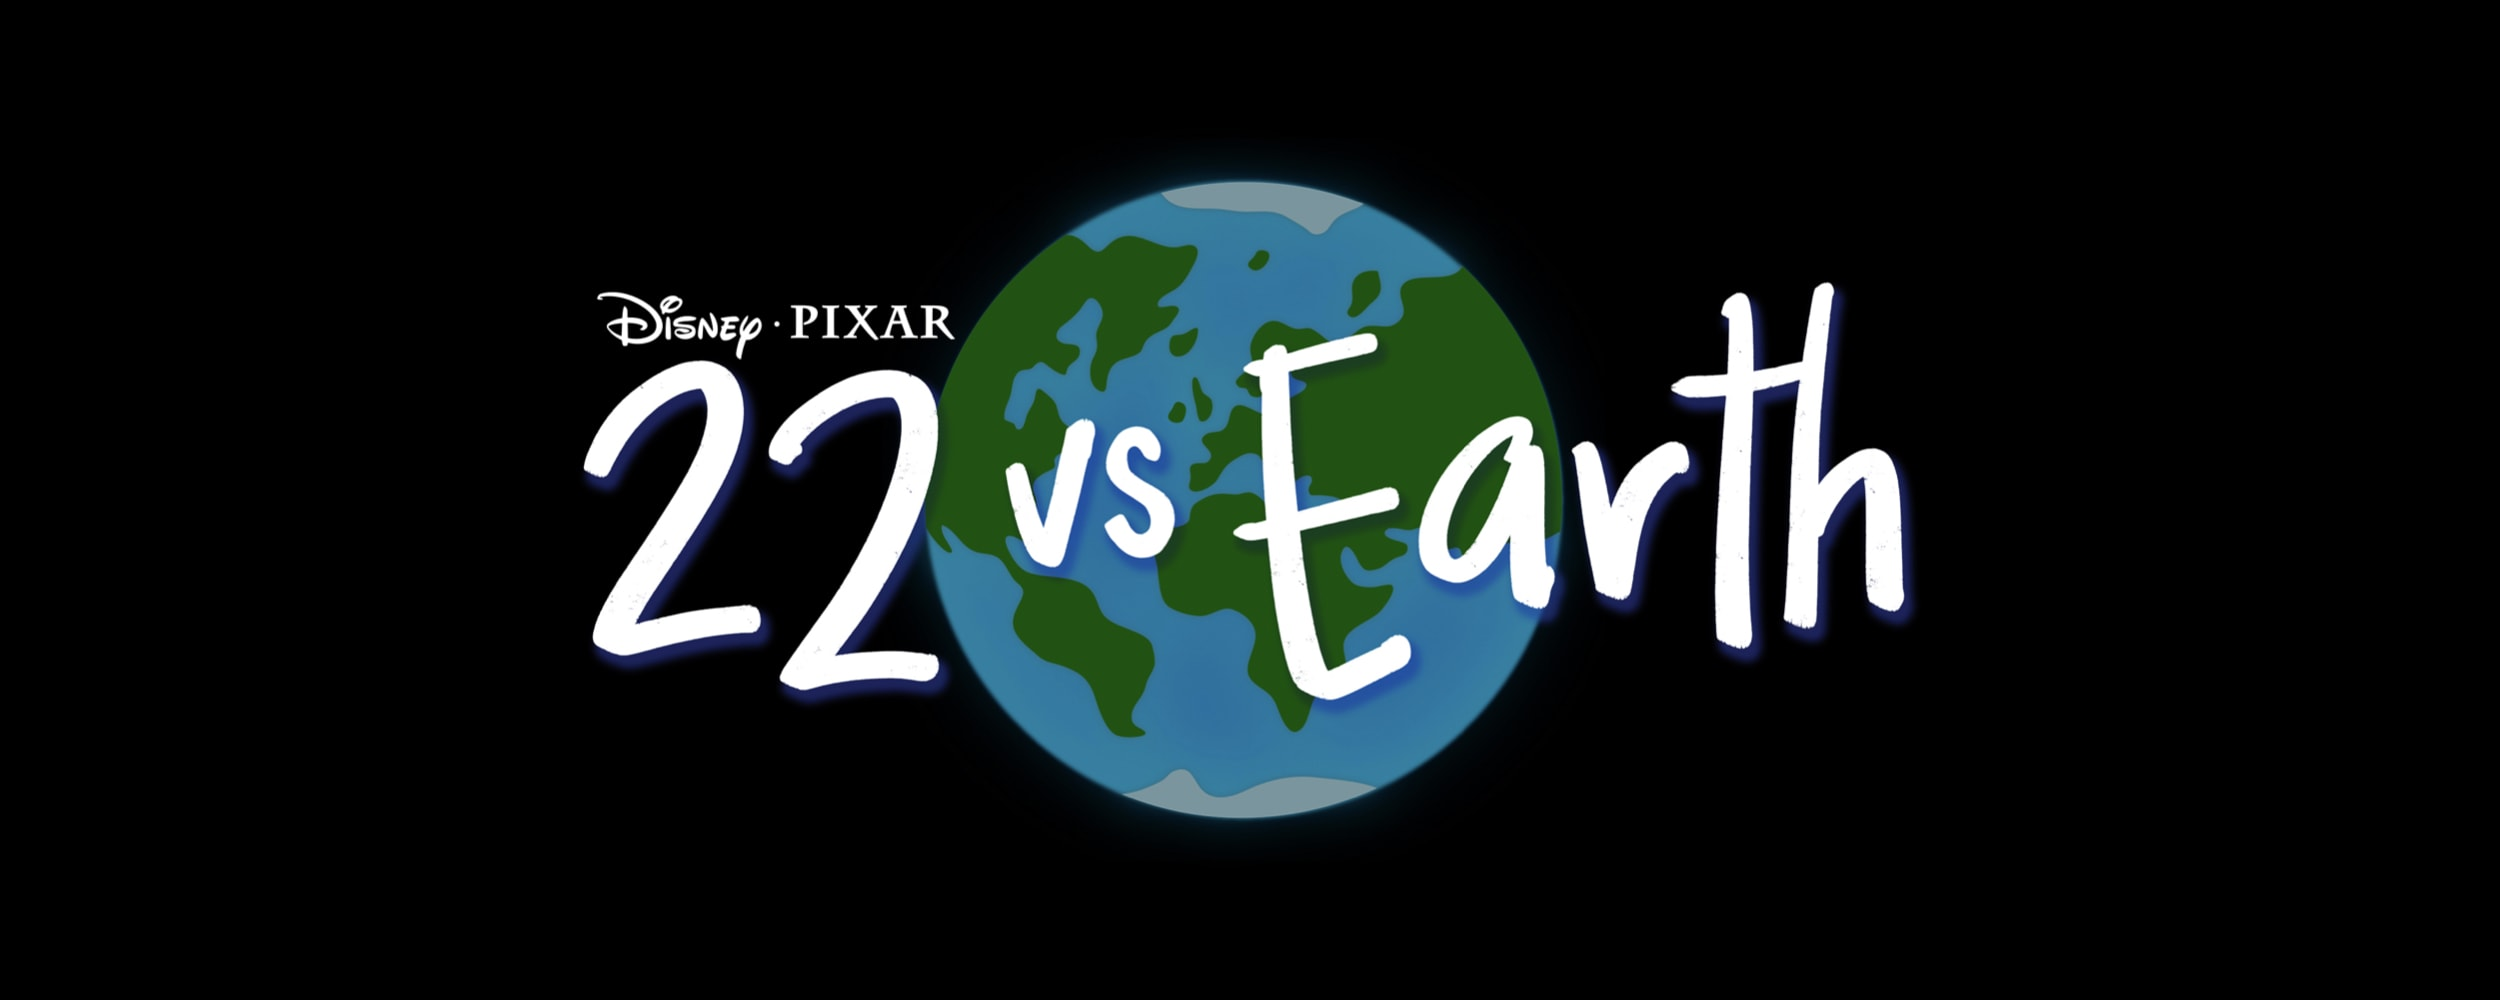 22 vs. Earth Media Kit